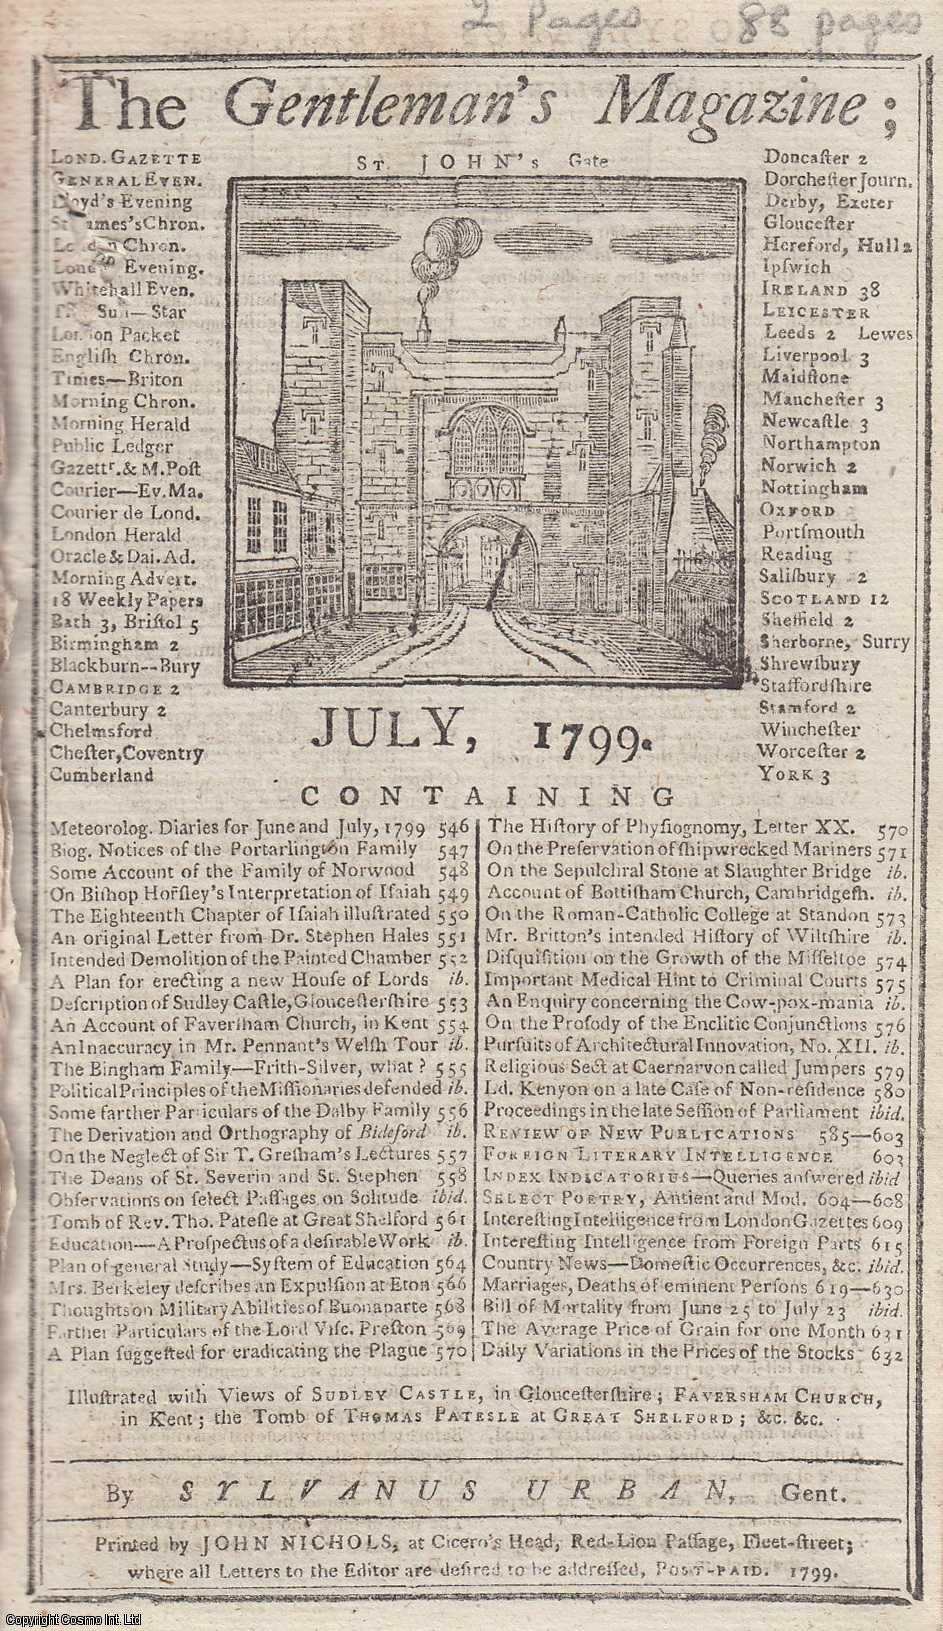 The Gentleman's Magazine for July 1799.  FEATURING Two Plates; Sudley Castle and Faversham Church & the Tomb of Rev. Thomas Patesle, Great Shelford Church., Urban, Sylvanus.